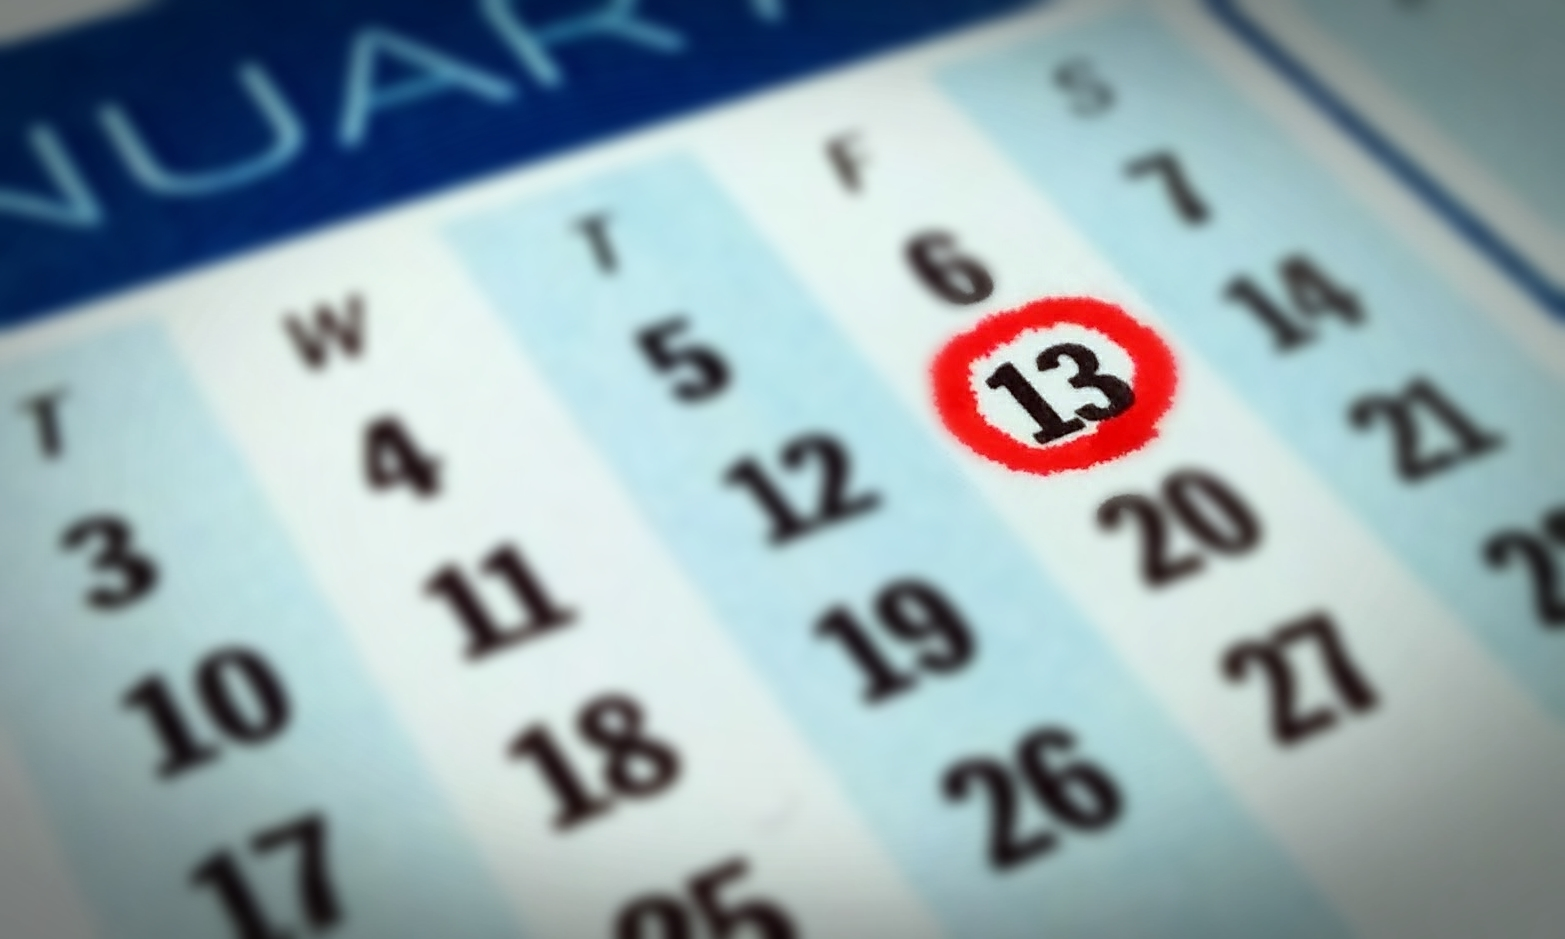 Are you one of the millions who dread Friday the 13th, or is it just another day?